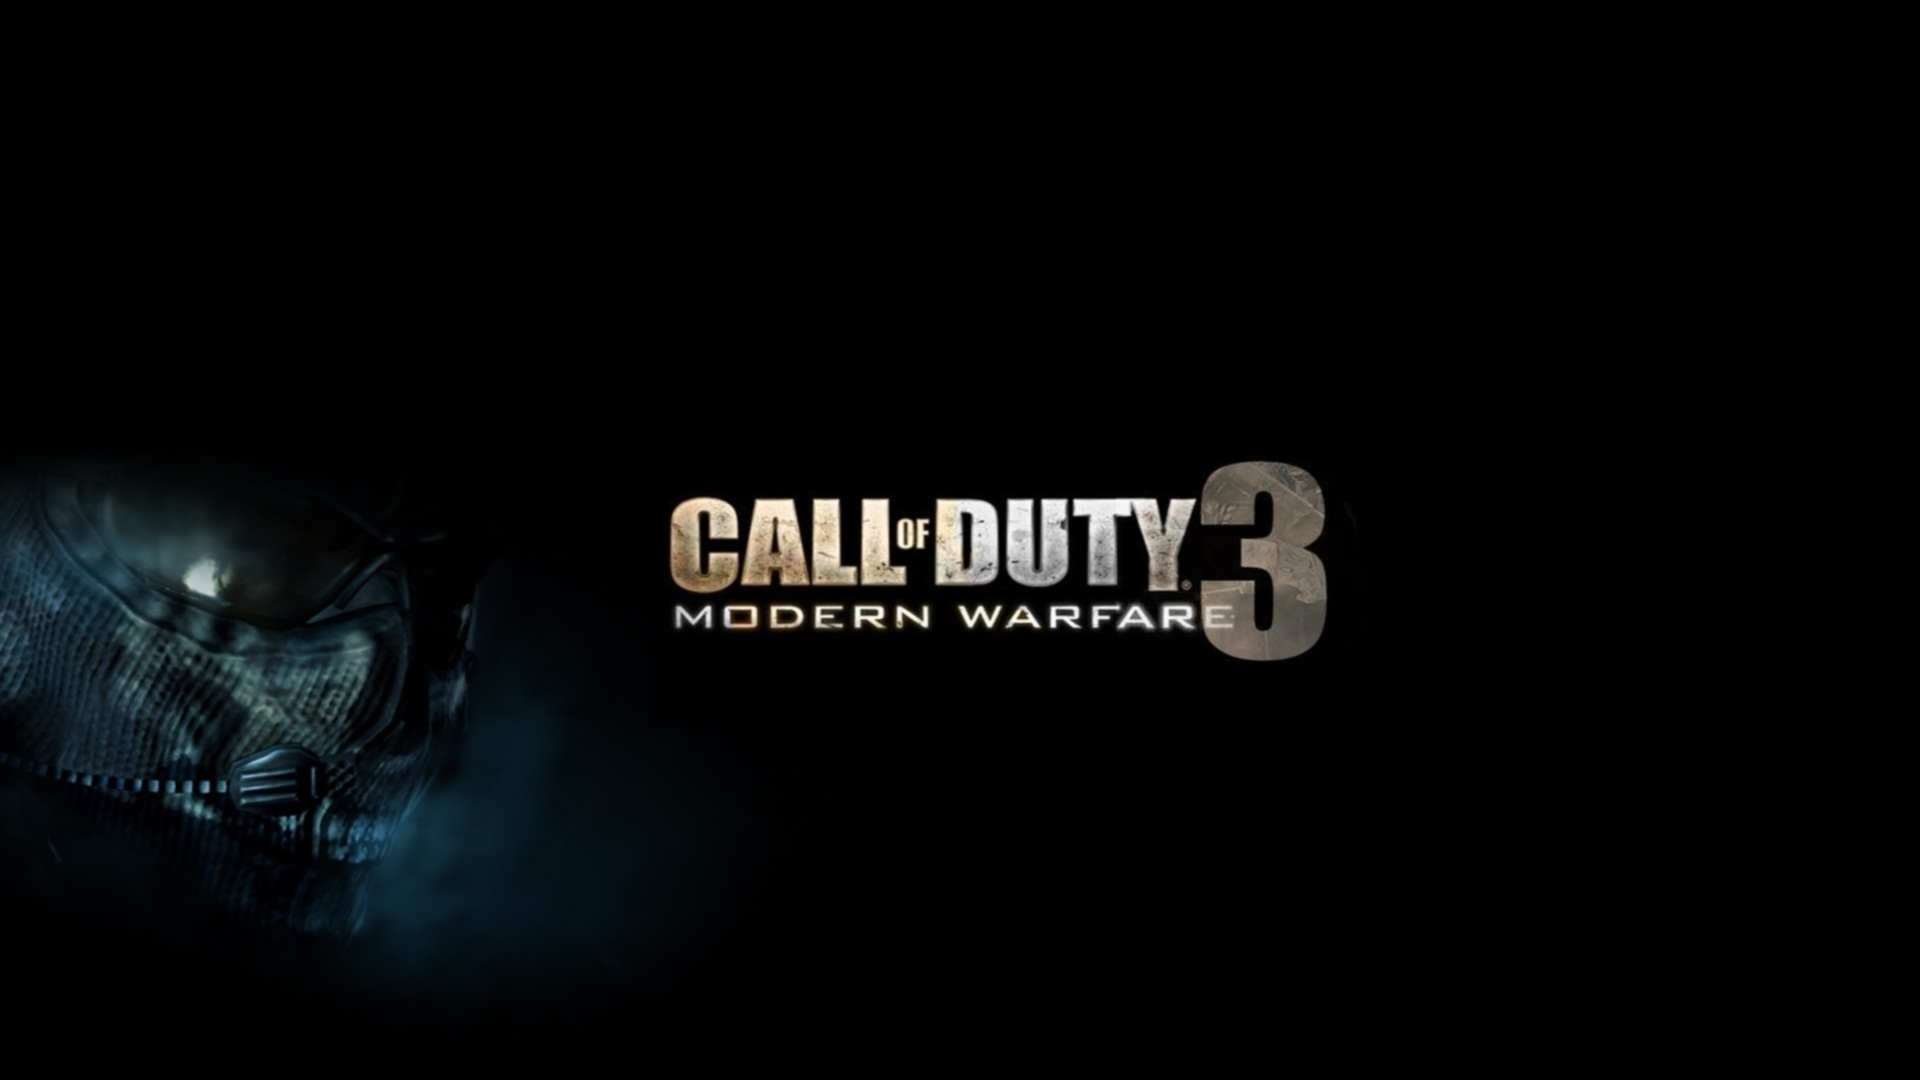 Call Of Duty Modern Warfare 3 HD Wallpaper 004